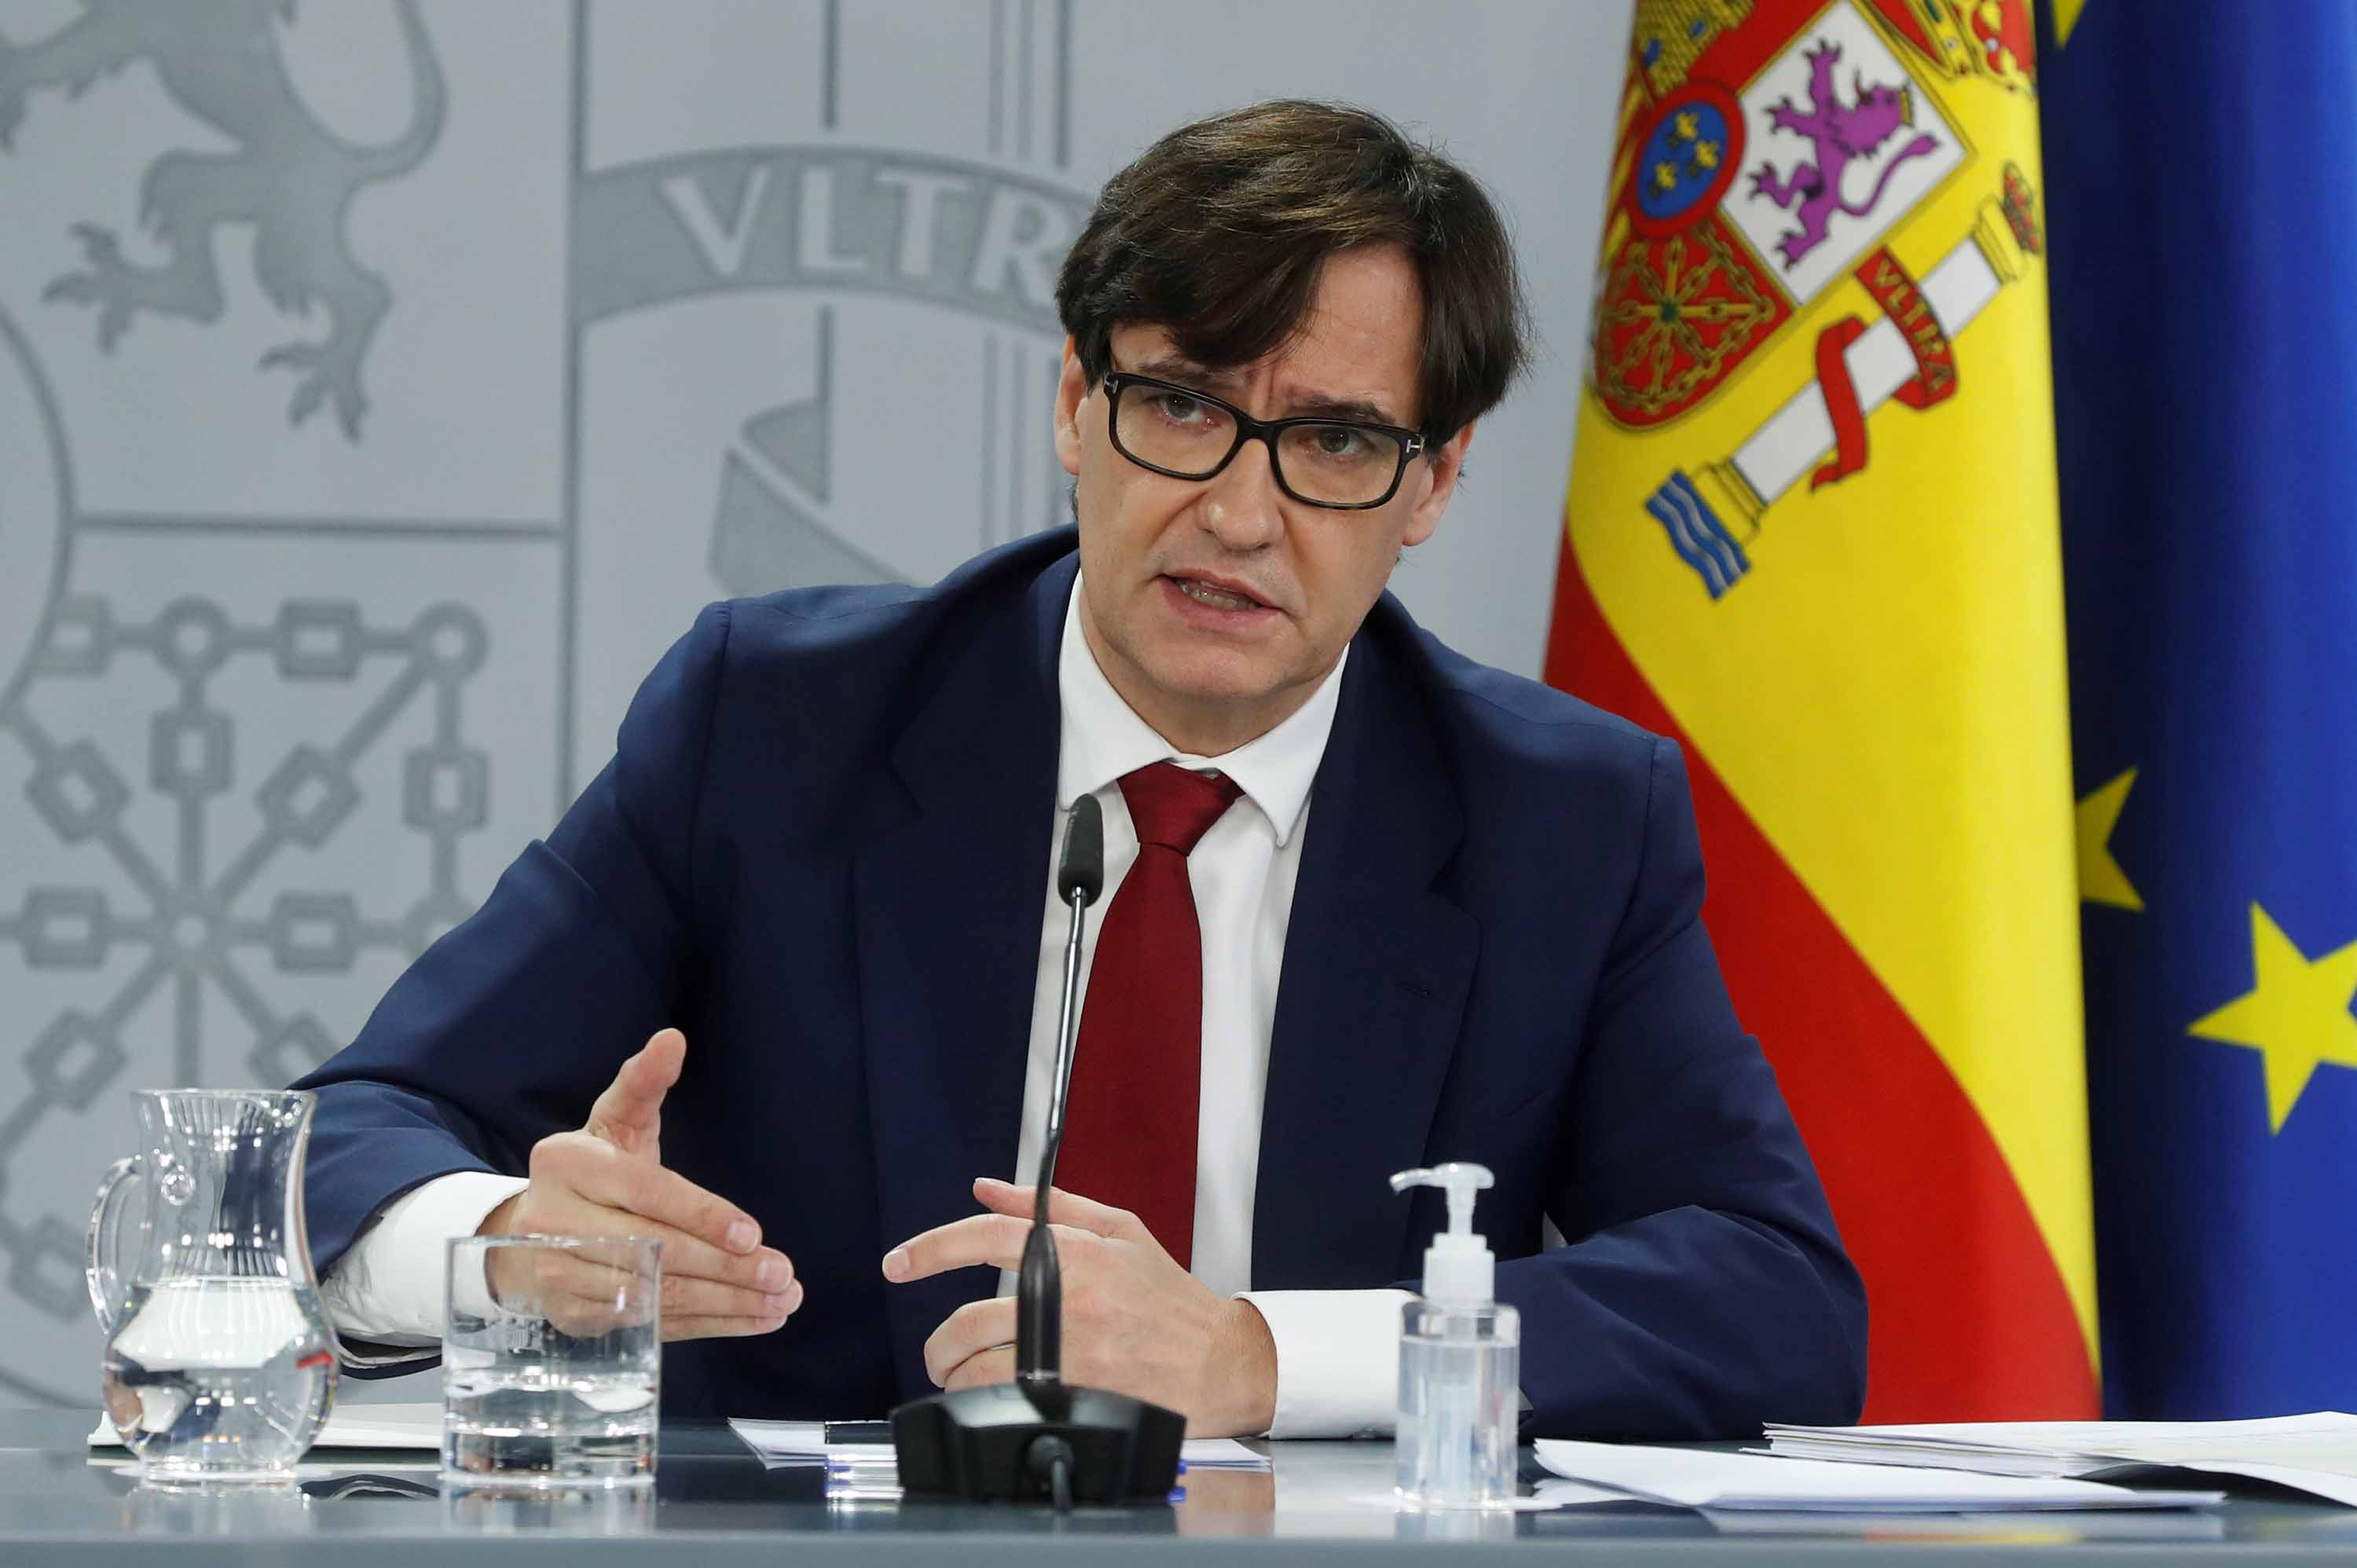 Spanish Health Minister Salvador Illa addresses a press conference in Madrid, Spain, on Friday, January 8, after a meeting of the COVID-19 Follow-up Committee.